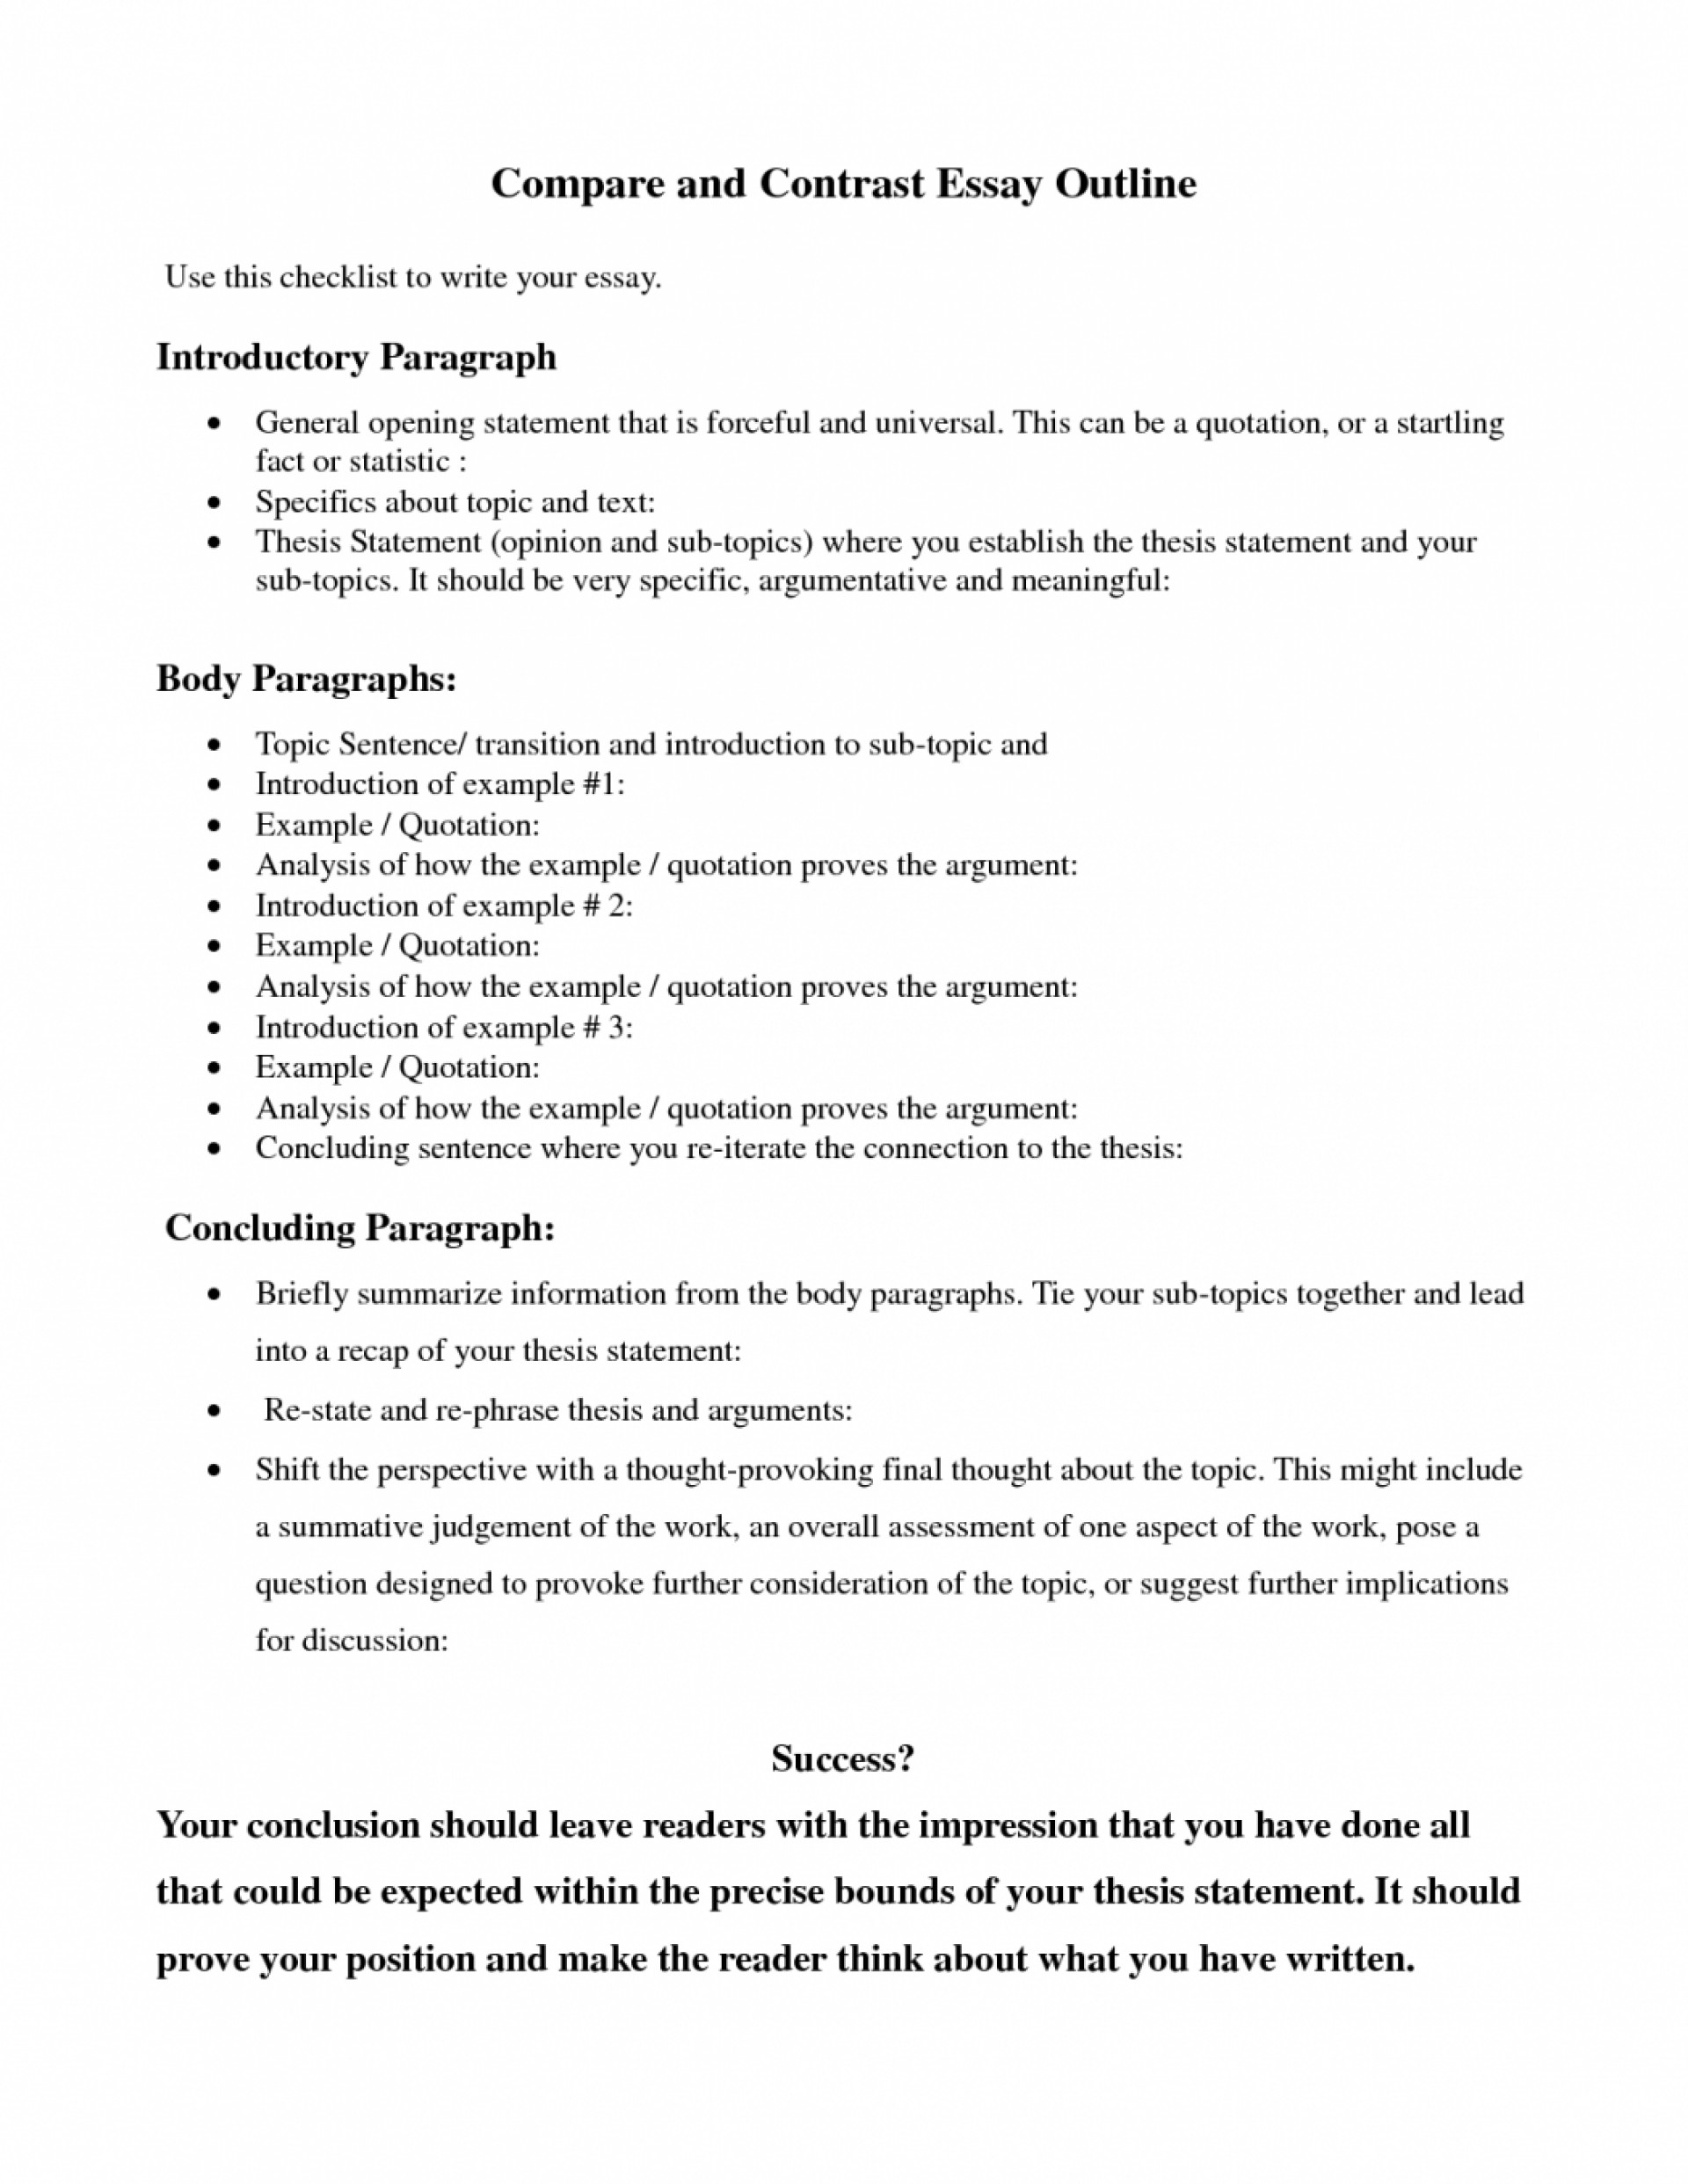 020 Act Essay Format Goal Blockety Co Examples Thesis Statement For Compare And Contrast Template Qak Good Score Pdf 1048x1356 Example How To Wonderful Write Scene Number In A New Killer 1920